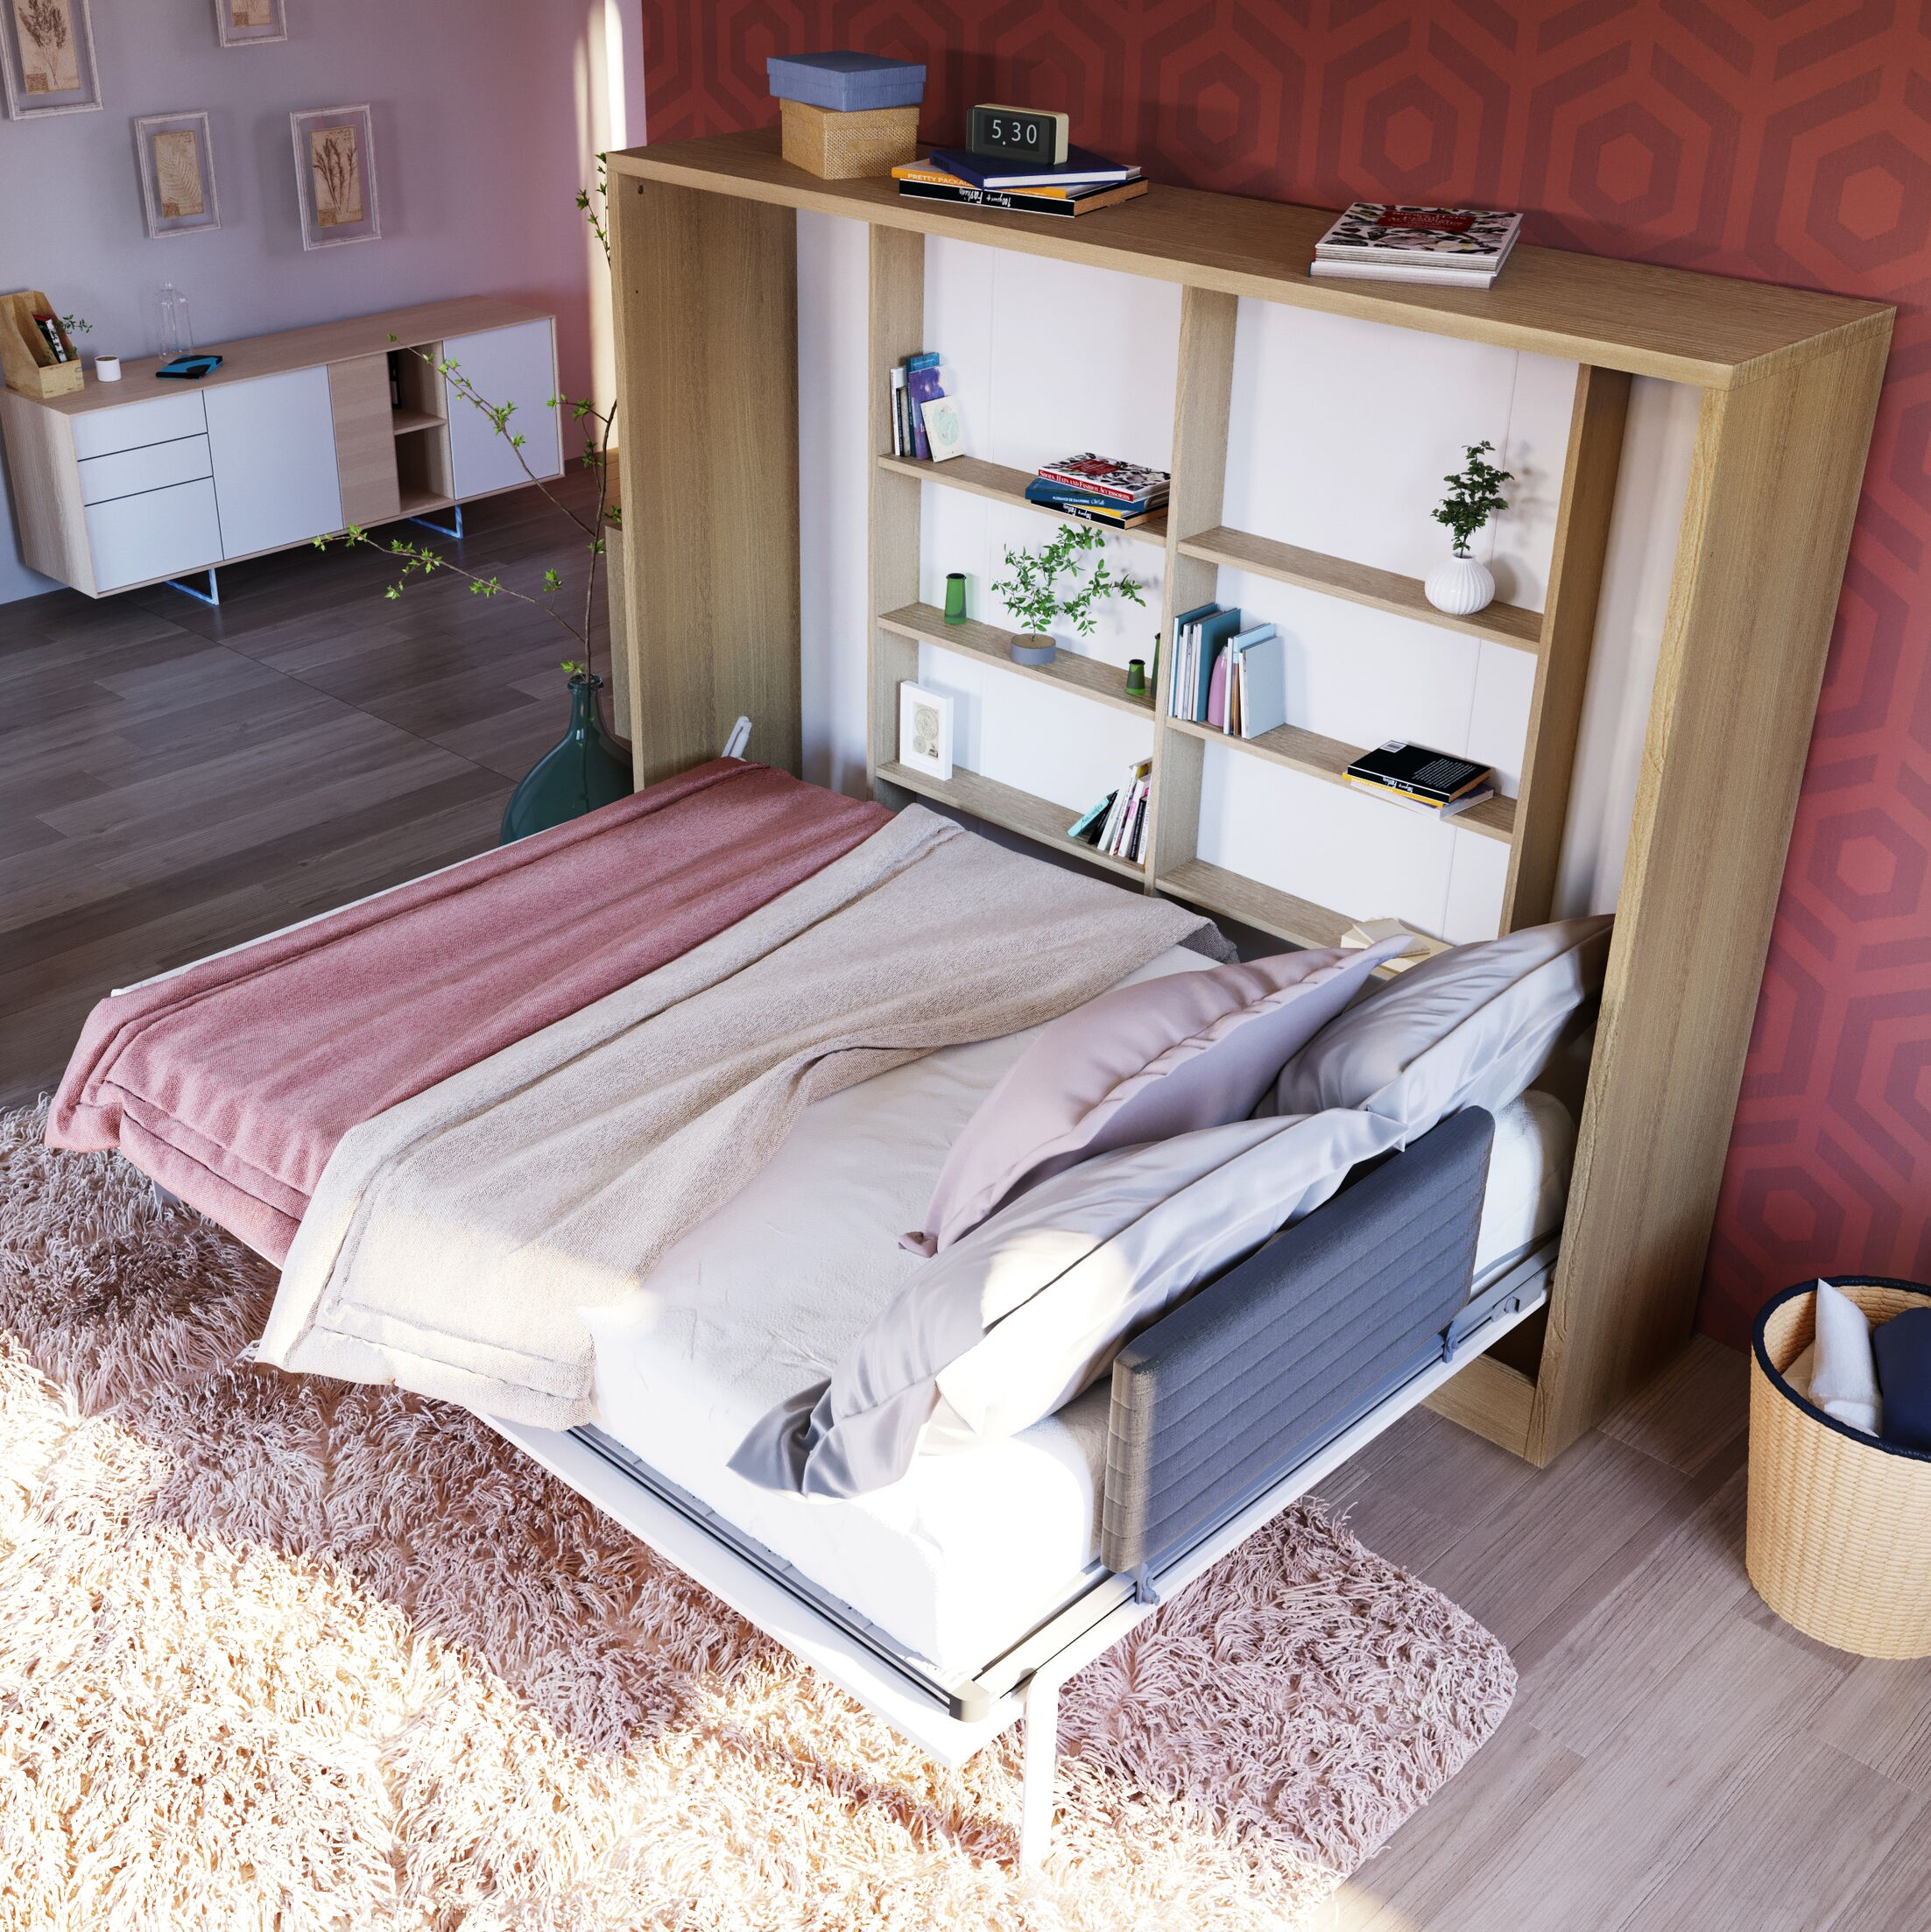 Gautreau Full Wall Configuration Murphy Bed without Table Color: Semi-Gloss White/Light Wood